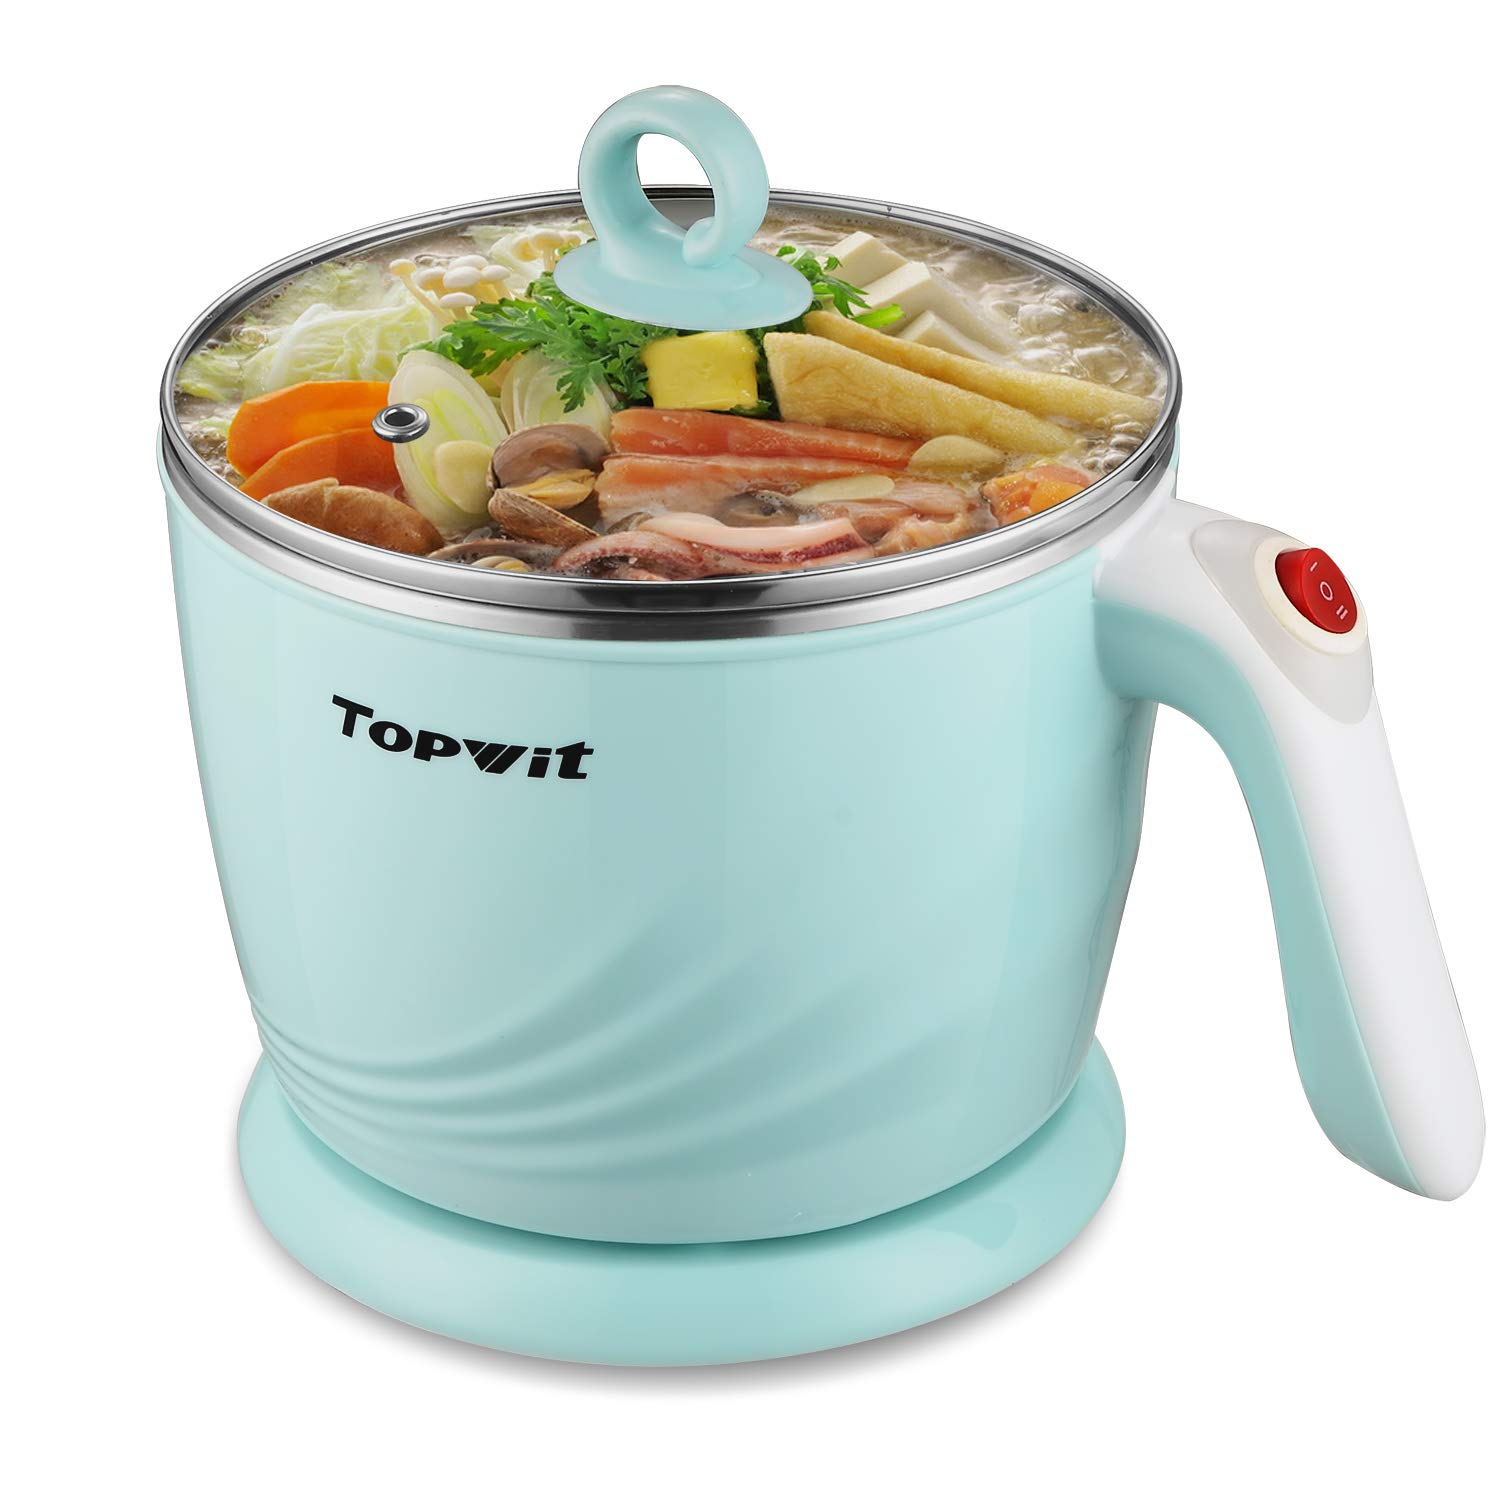 Topwit Electric Hot Pot Mini, Electric Cooker, Noodles Cooker, Electric Kettle with Multi-Function for Steam, Egg, Soup and Stew with Over-Heating Boil Dry Protection, Dual Power, 1.2L, Green